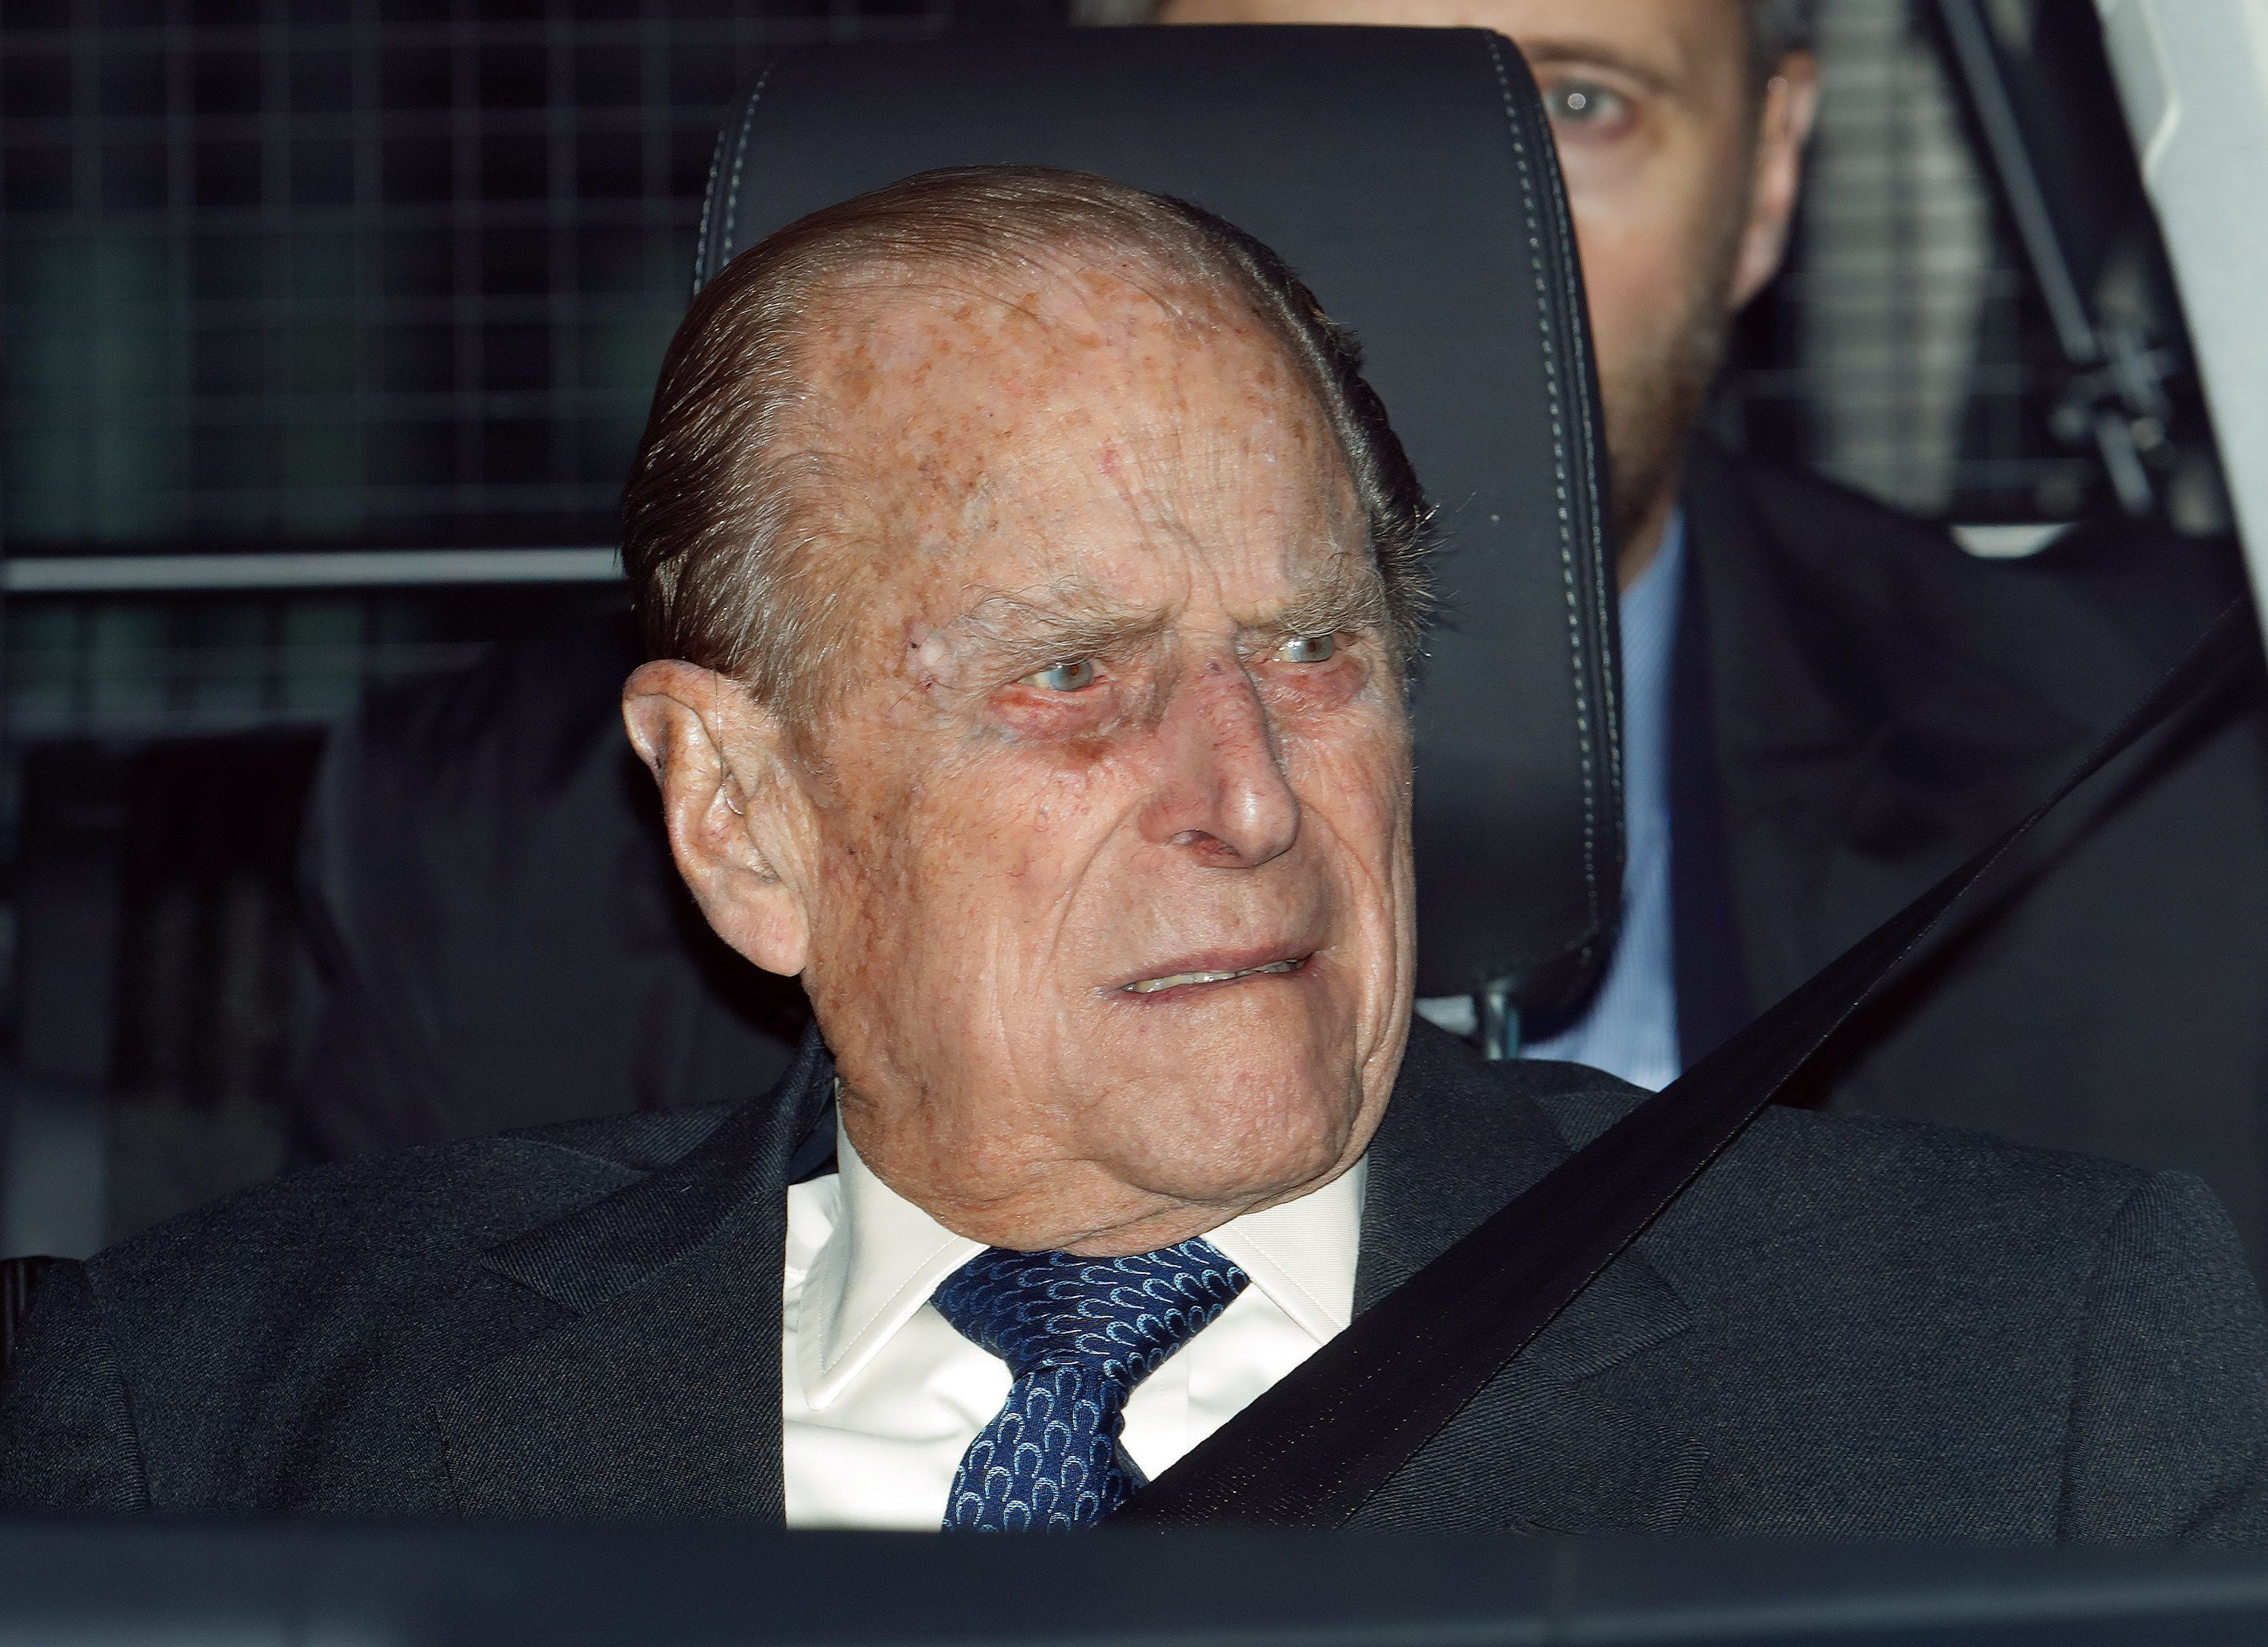 Duke of Edinburgh gives up driving licence after Sandringham crash